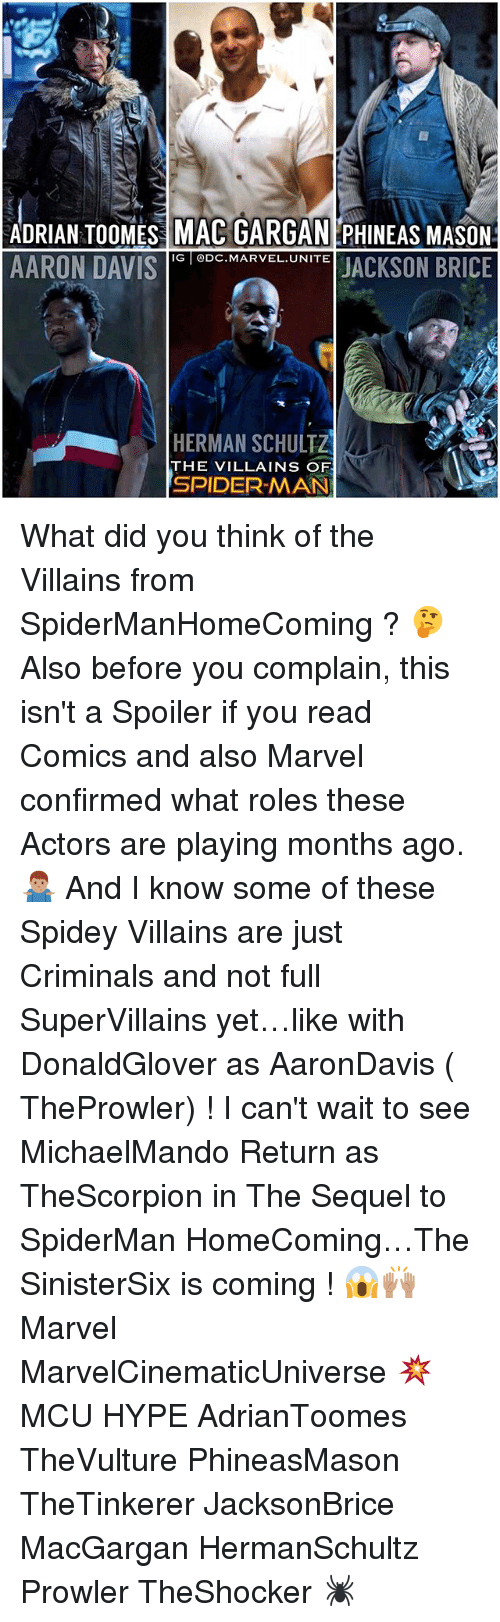 Hype, Memes, and Spider: ADRIAN TOOMES MAC GARGAN PHINEAS MASON  AARON DAVIScMARVELUNITE JACKSON BRICE  IG DC.MARVEL.UNITE  HERMAN SCHULTZ  THE VILLAINS OF  SPIDER-MAN What did you think of the Villains from SpiderManHomeComing ? 🤔 Also before you complain, this isn't a Spoiler if you read Comics and also Marvel confirmed what roles these Actors are playing months ago. 🤷🏽♂️ And I know some of these Spidey Villains are just Criminals and not full SuperVillains yet…like with DonaldGlover as AaronDavis ( TheProwler) ! I can't wait to see MichaelMando Return as TheScorpion in The Sequel to SpiderMan HomeComing…The SinisterSix is coming ! 😱🙌🏽 Marvel MarvelCinematicUniverse 💥 MCU HYPE AdrianToomes TheVulture PhineasMason TheTinkerer JacksonBrice MacGargan HermanSchultz Prowler TheShocker 🕷